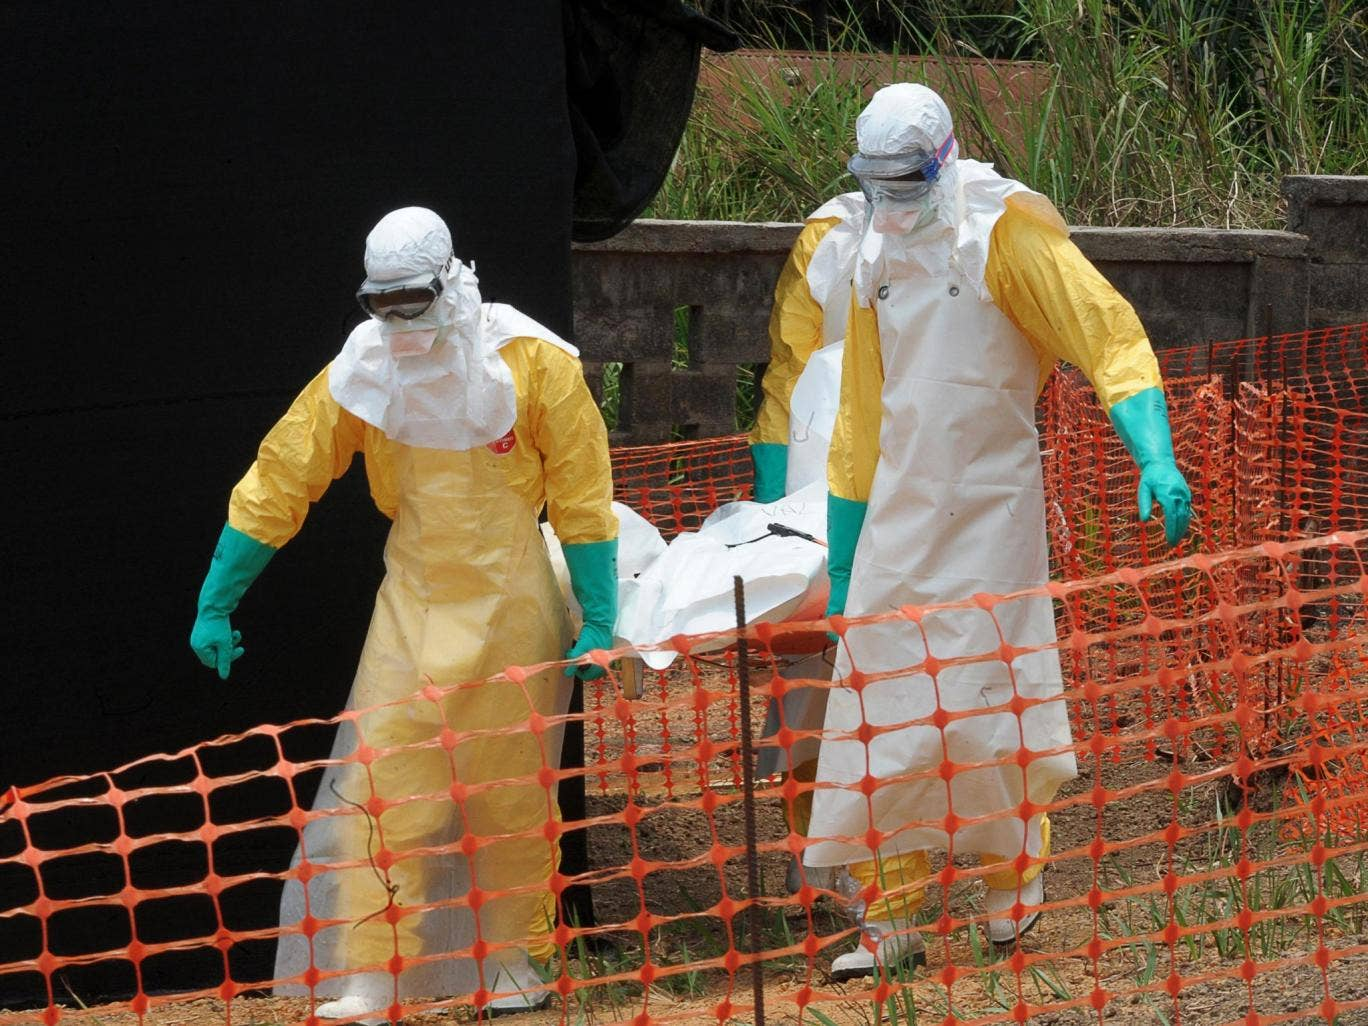 Staff of the 'Doctors without Borders' ('Medecin sans frontieres') carry the body of a person killed by viral haemorrhagic fever